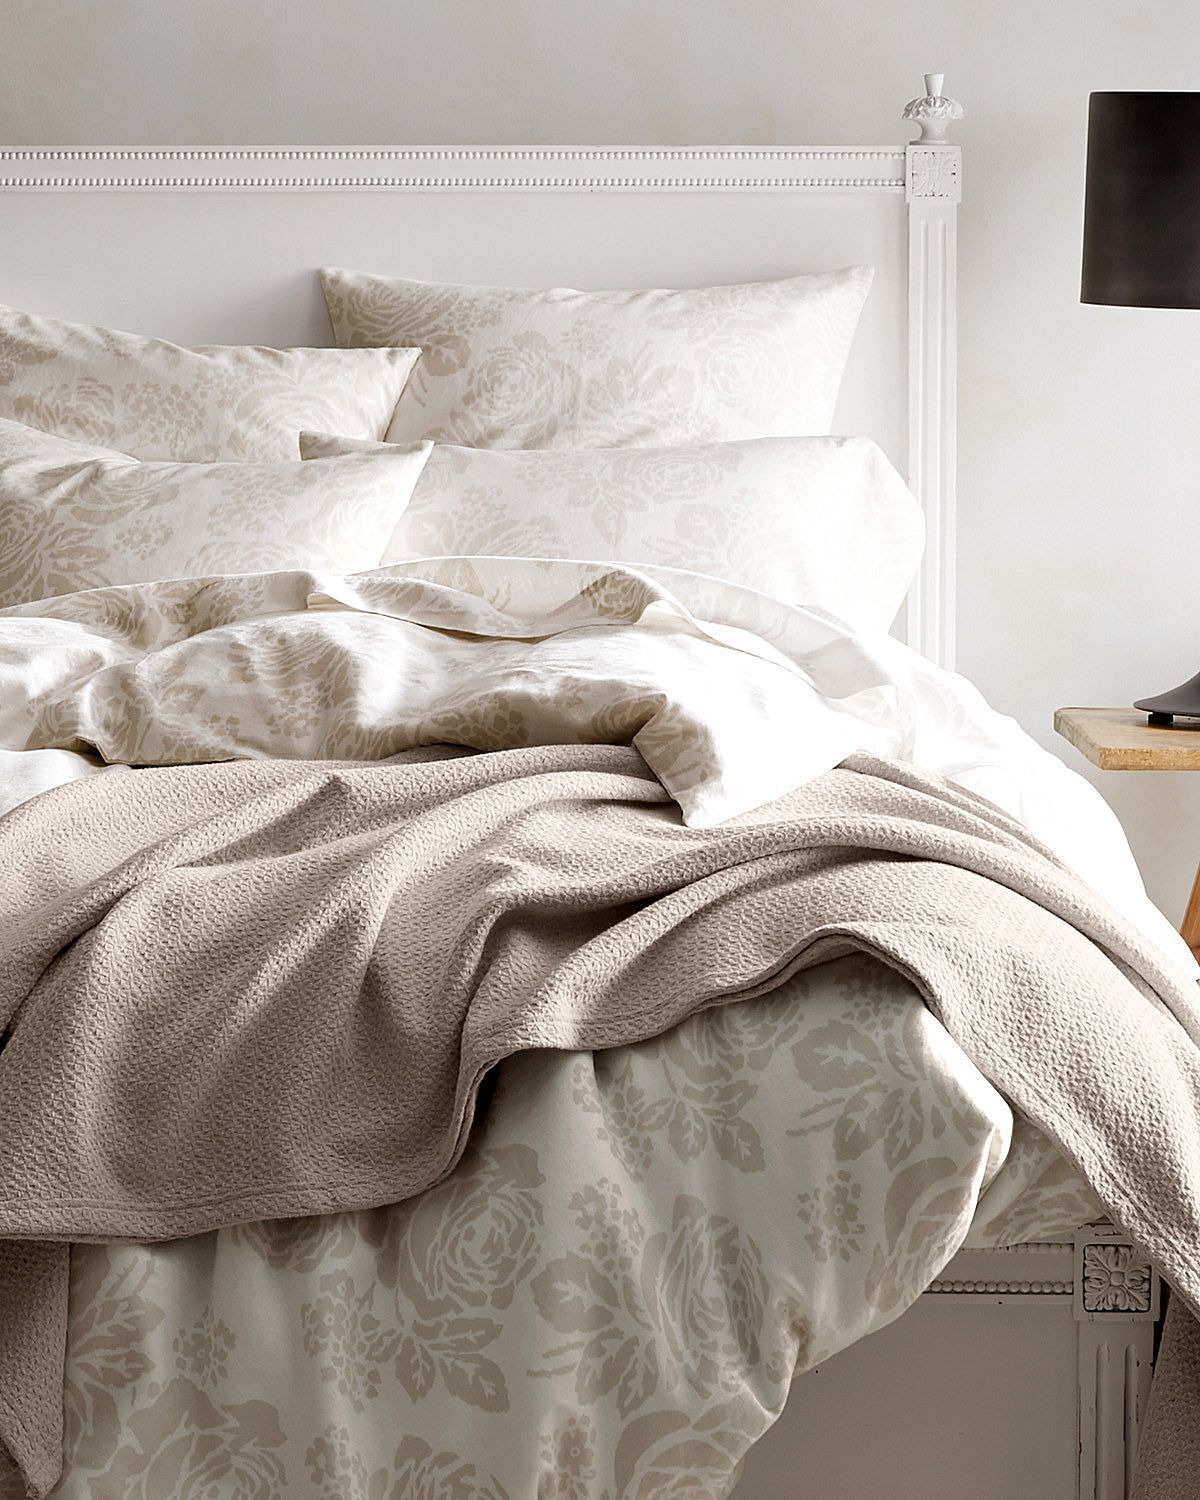 Threads By Garnet Hill Stay Connected Be Inspired Get Creative Linen Duvet Covers Bed Cotton Bedding